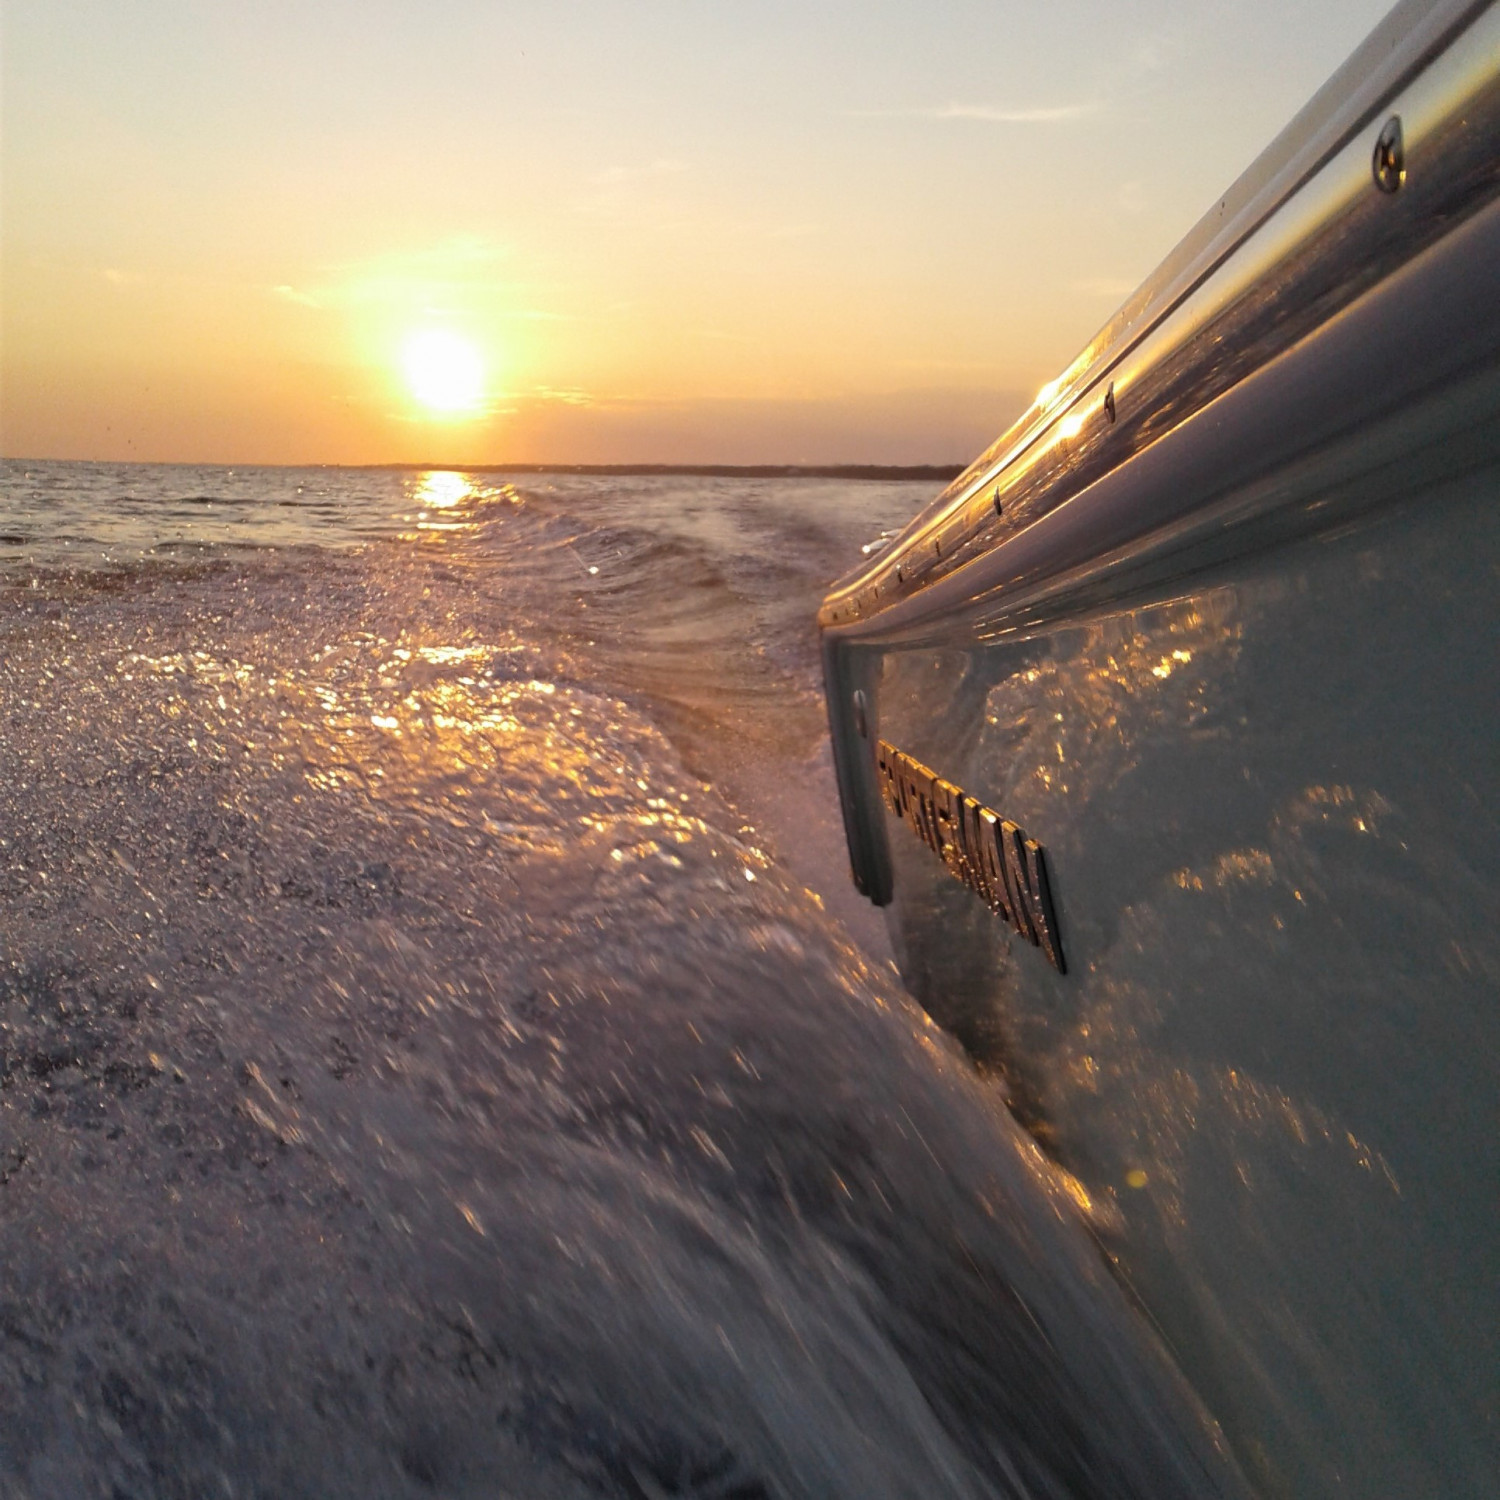 Title: It doesn't get any better.... - On board their Sportsman Heritage 211 Center Console - Location: Navarre FL. Participating in the Photo Contest #SportsmanNovember2017